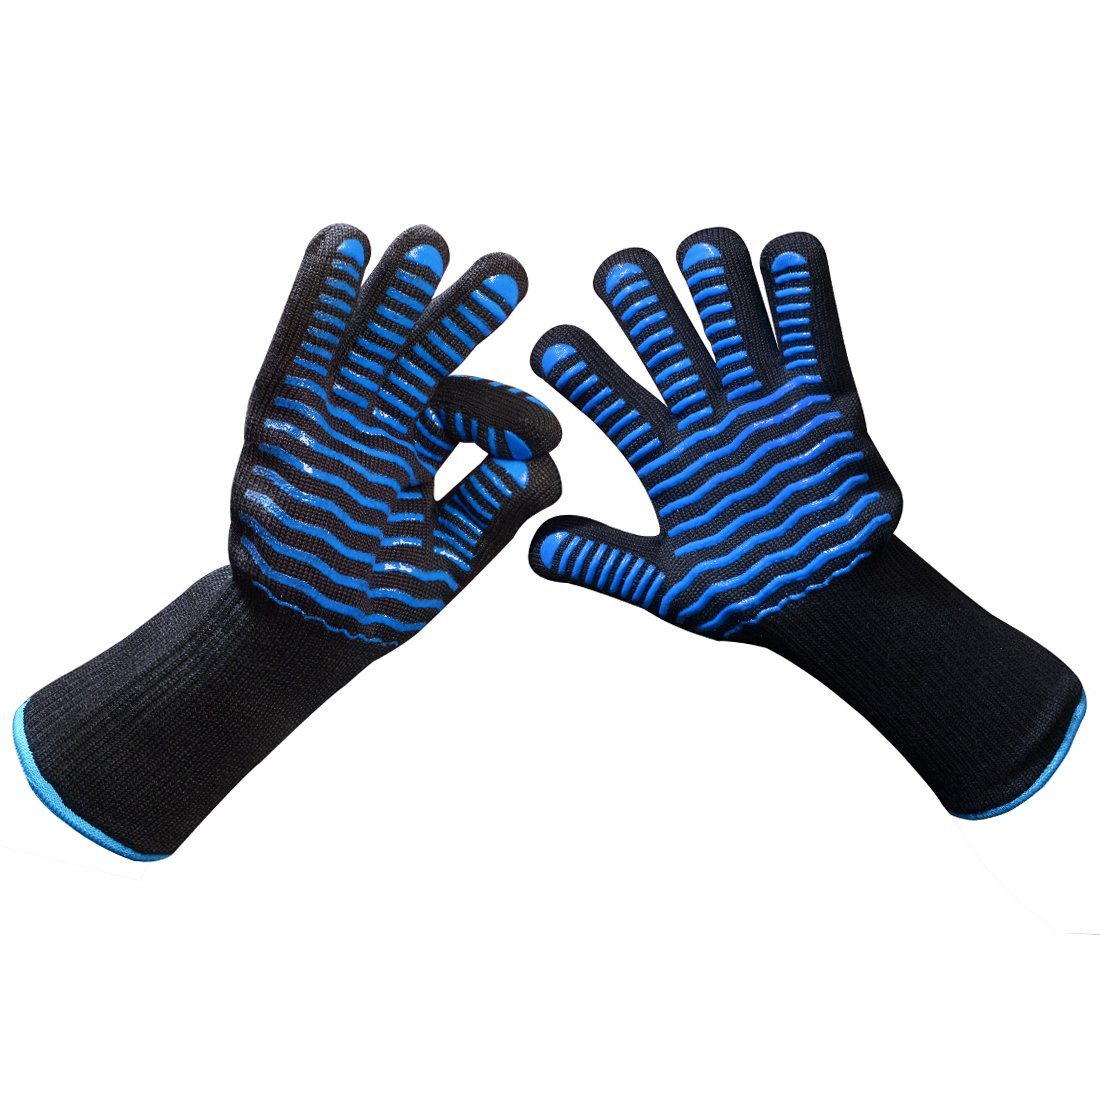 Schwer Extreme Heat Resistant Oven BBQ&Grilling Gloves-Flame Retardant Silicone Anti-Slip Cooking, Frying